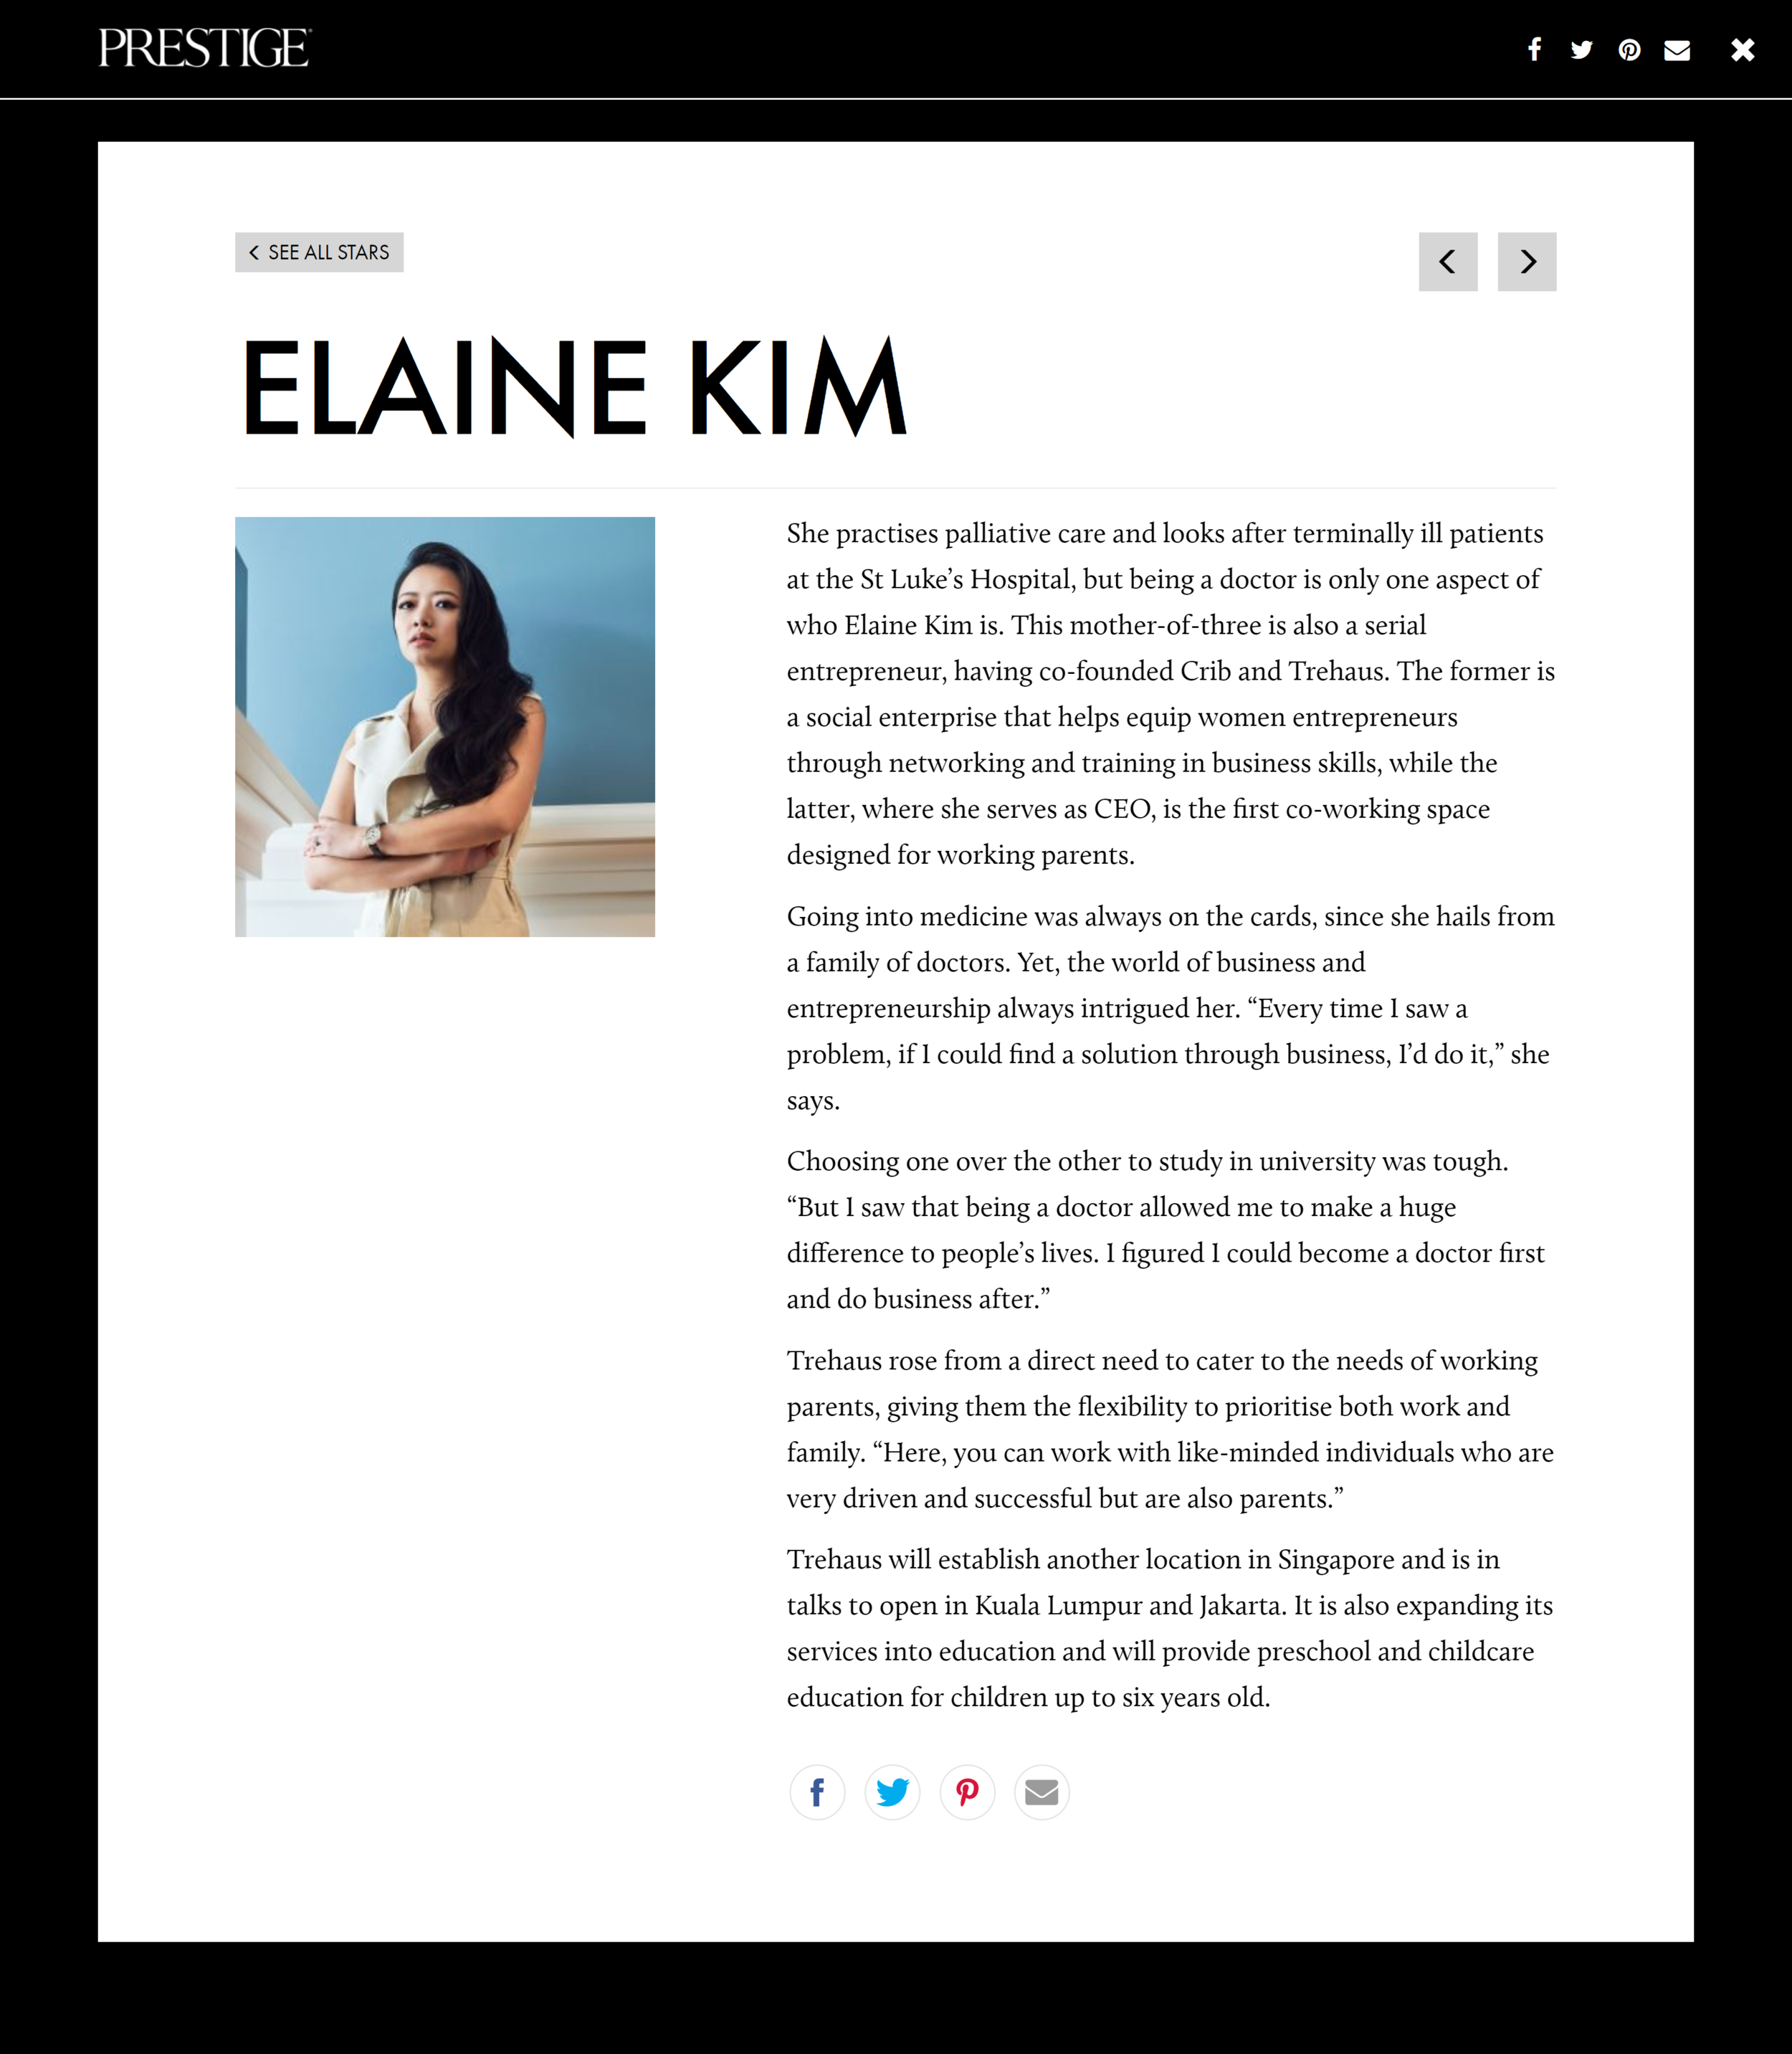 screencapture-prestigeonline-sg-people-the-lists-40-40-2018-vanguards-elaine-kim-4-2019-02-14-21_30_32.png